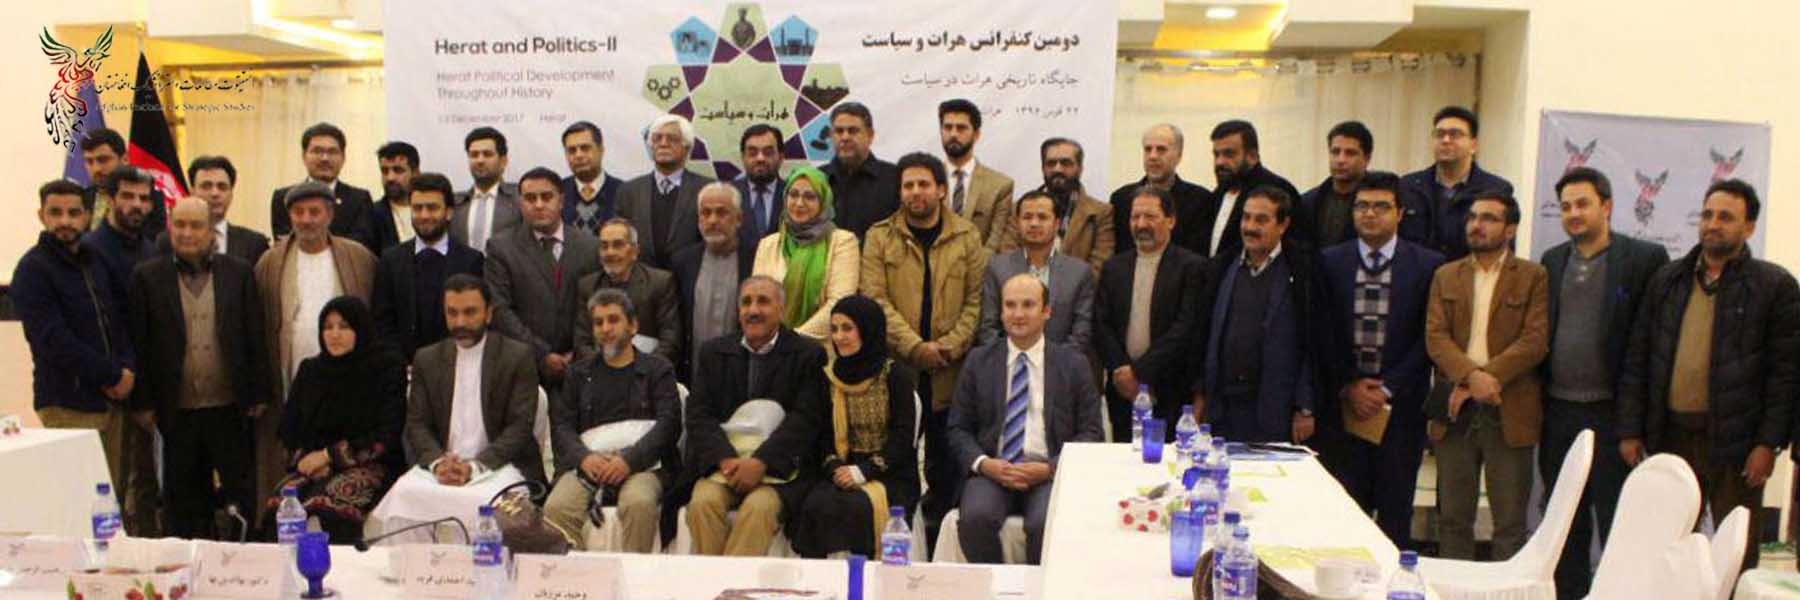 AISS organizes the second round of 'Herat and Politics' meetings